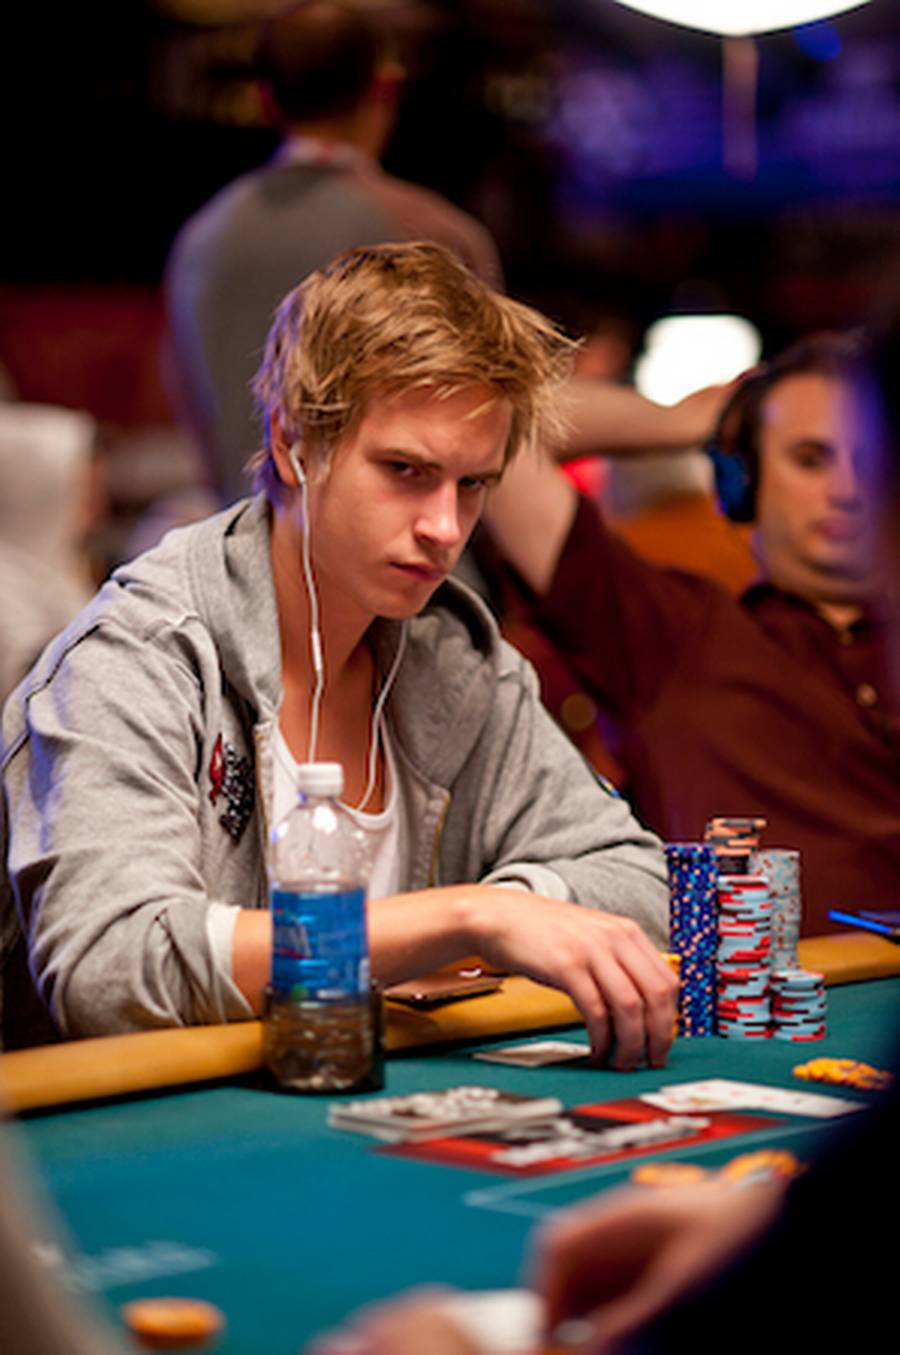 22-årige Viktor Blom spiller for første gang med til World Series of Poker. (Foto: Joe Giron/PokerStarsblog)